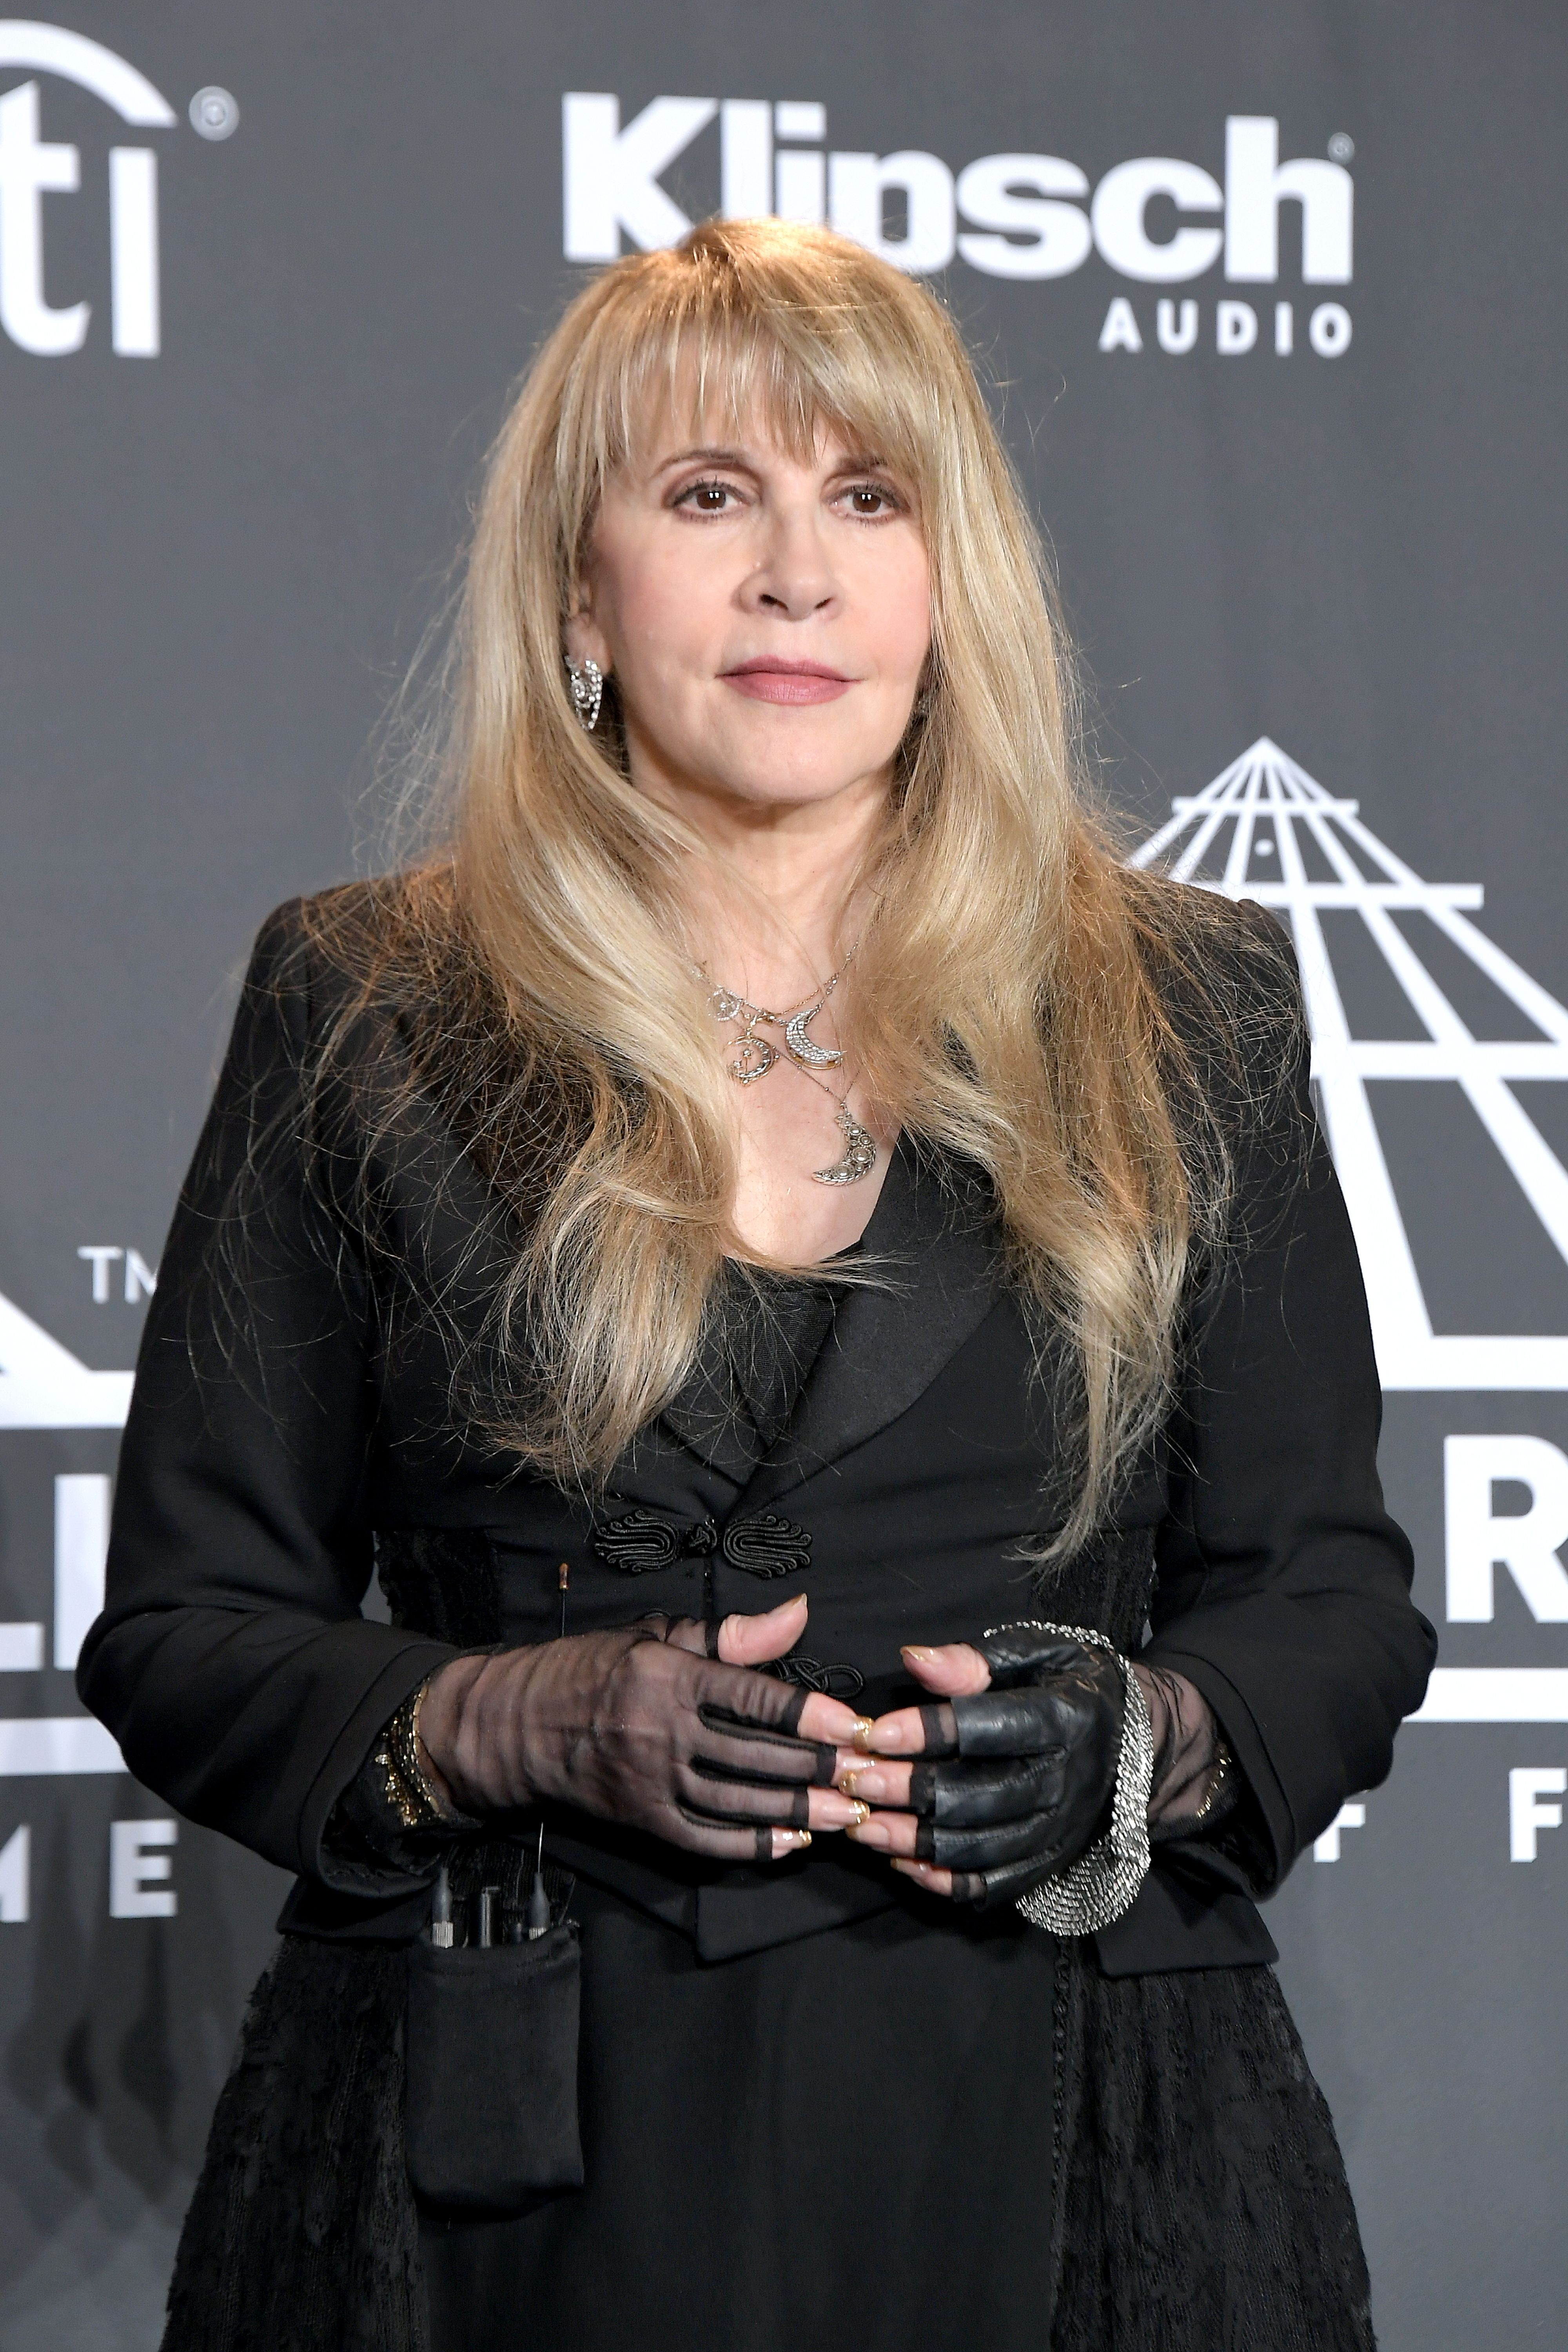 Stevie Nicks during the 2019 Rock & Roll Hall Of Fame Induction Ceremony at Barclays Center on March 29, 2019 in New York City.   Source: Getty Images